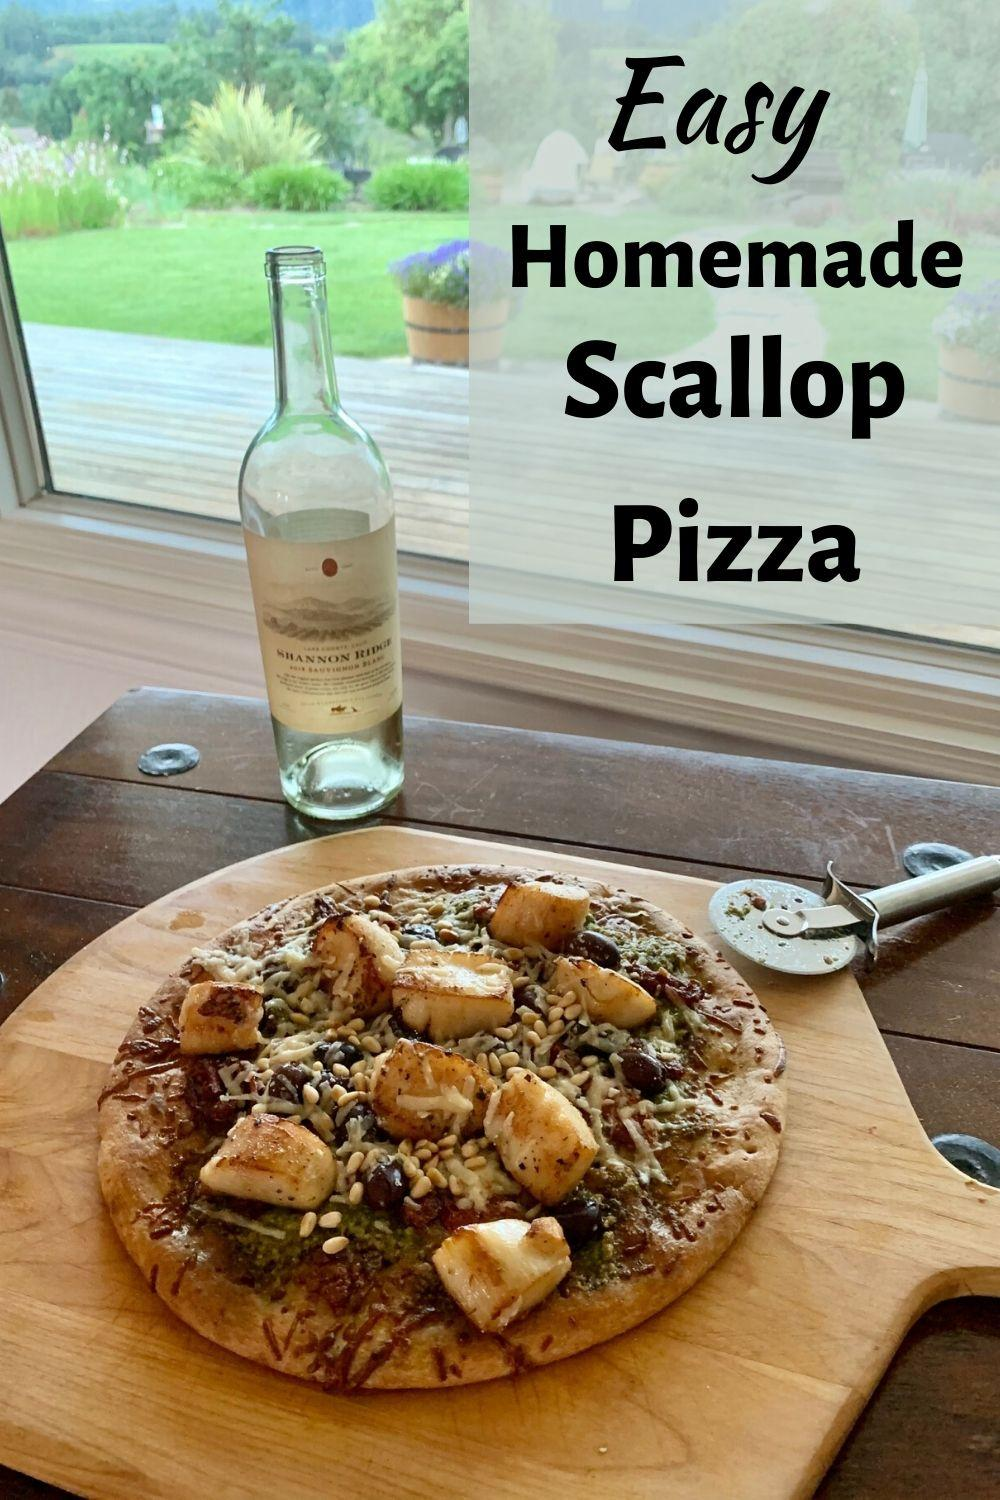 Homemade Scallop Pizza Pinnable Graphic